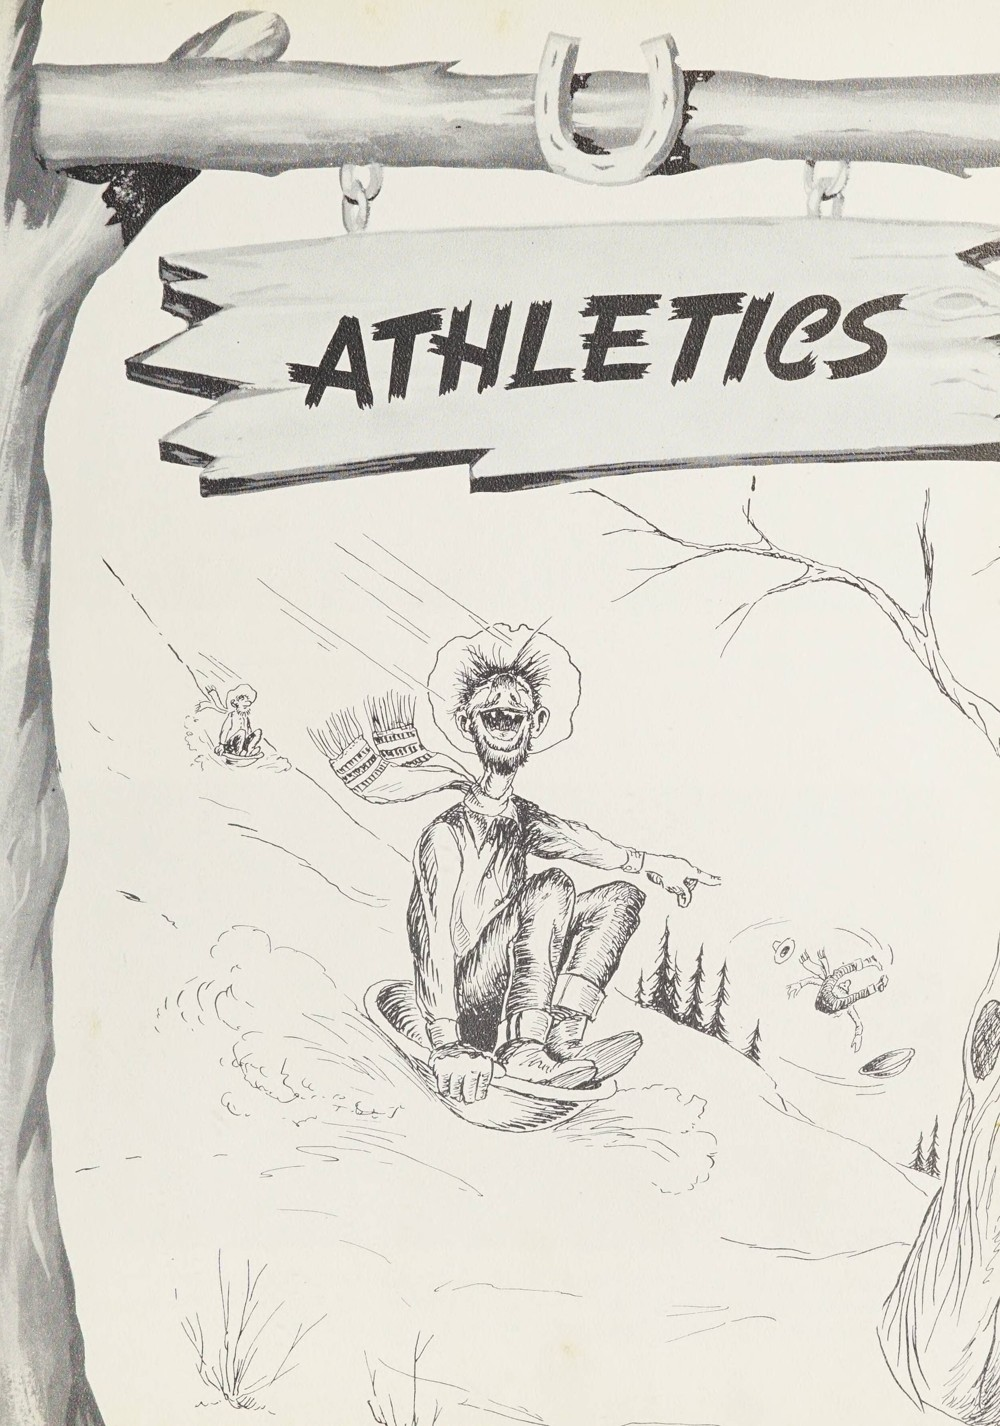 Athletics page. Student sledding while pointing to another student who has fallen off their sled.